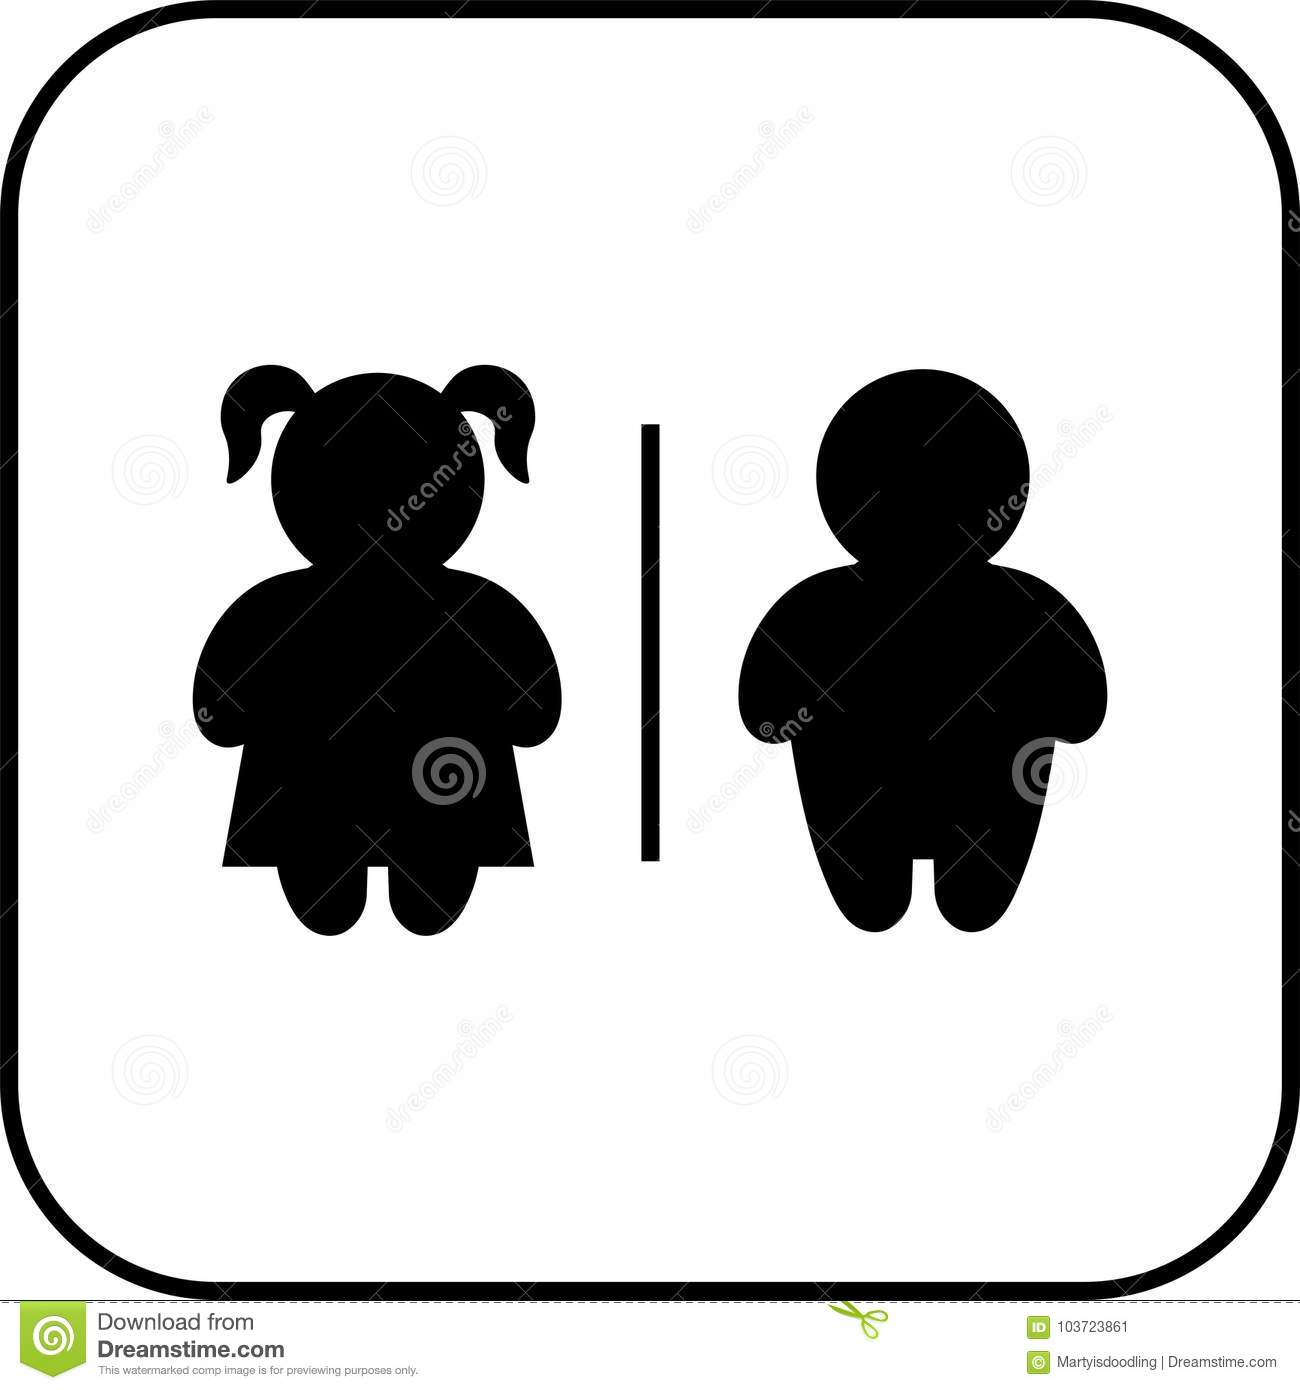 Restroom Sign Boy And Girl Stock Vector Illustration Of Black